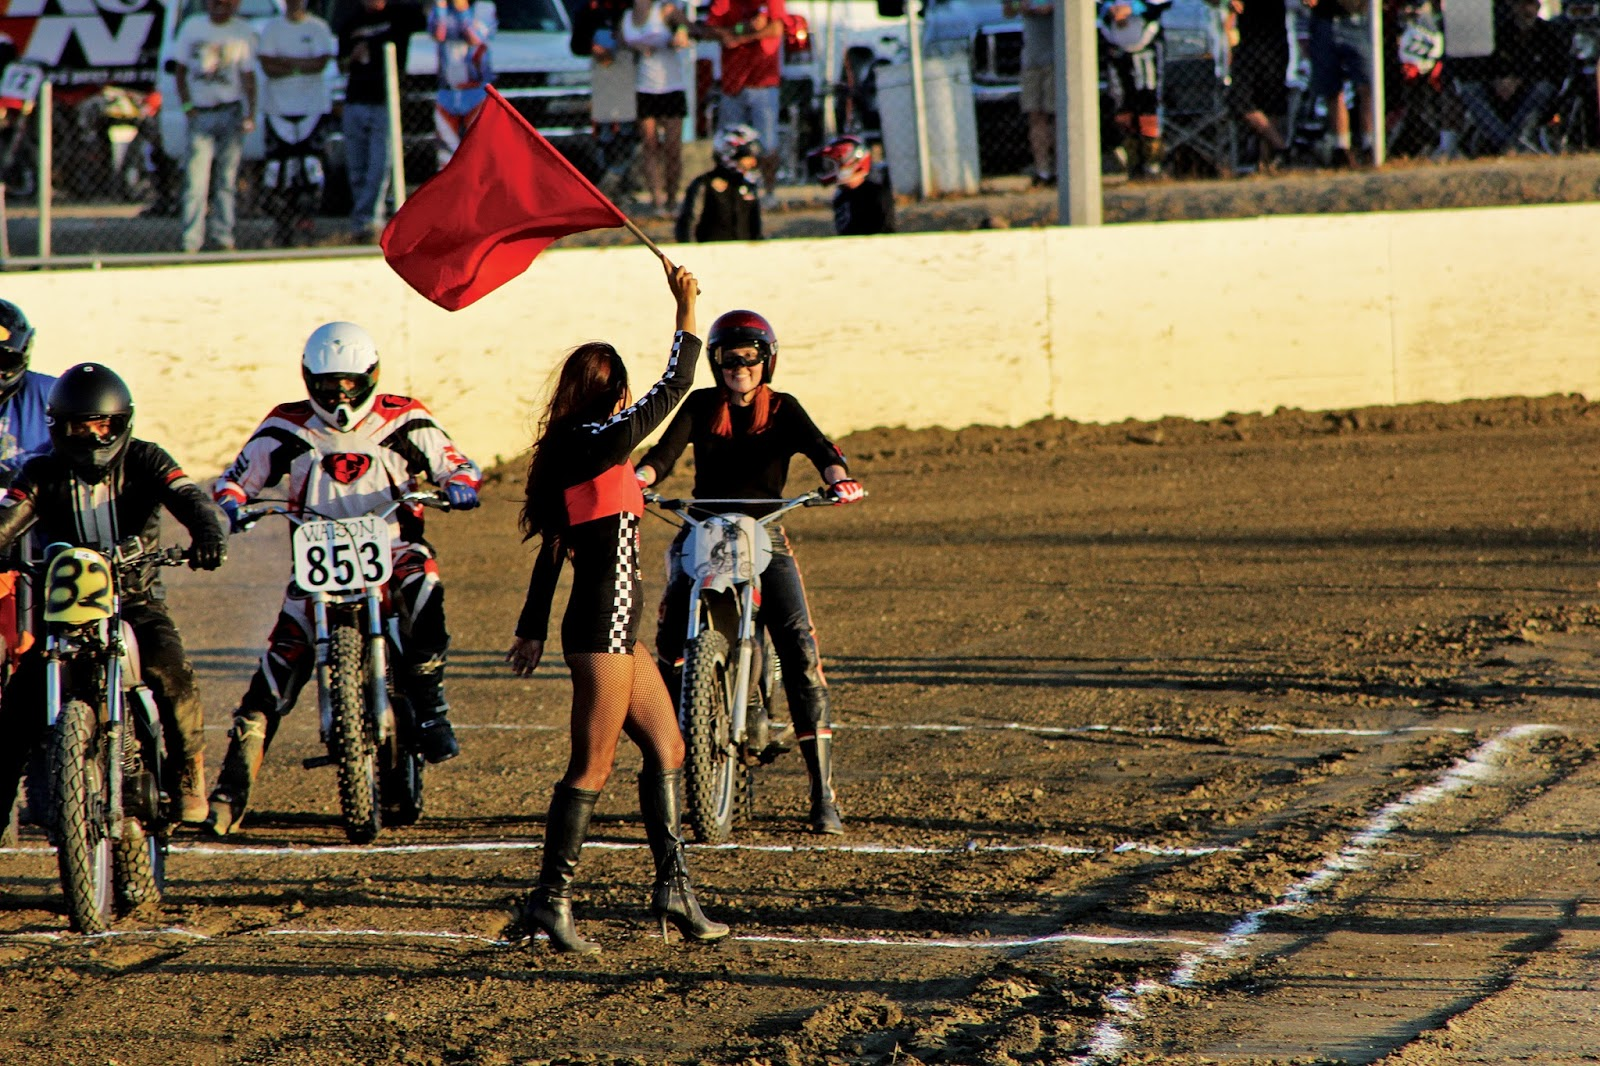 Hell on Wheels Flat Track Races 2013